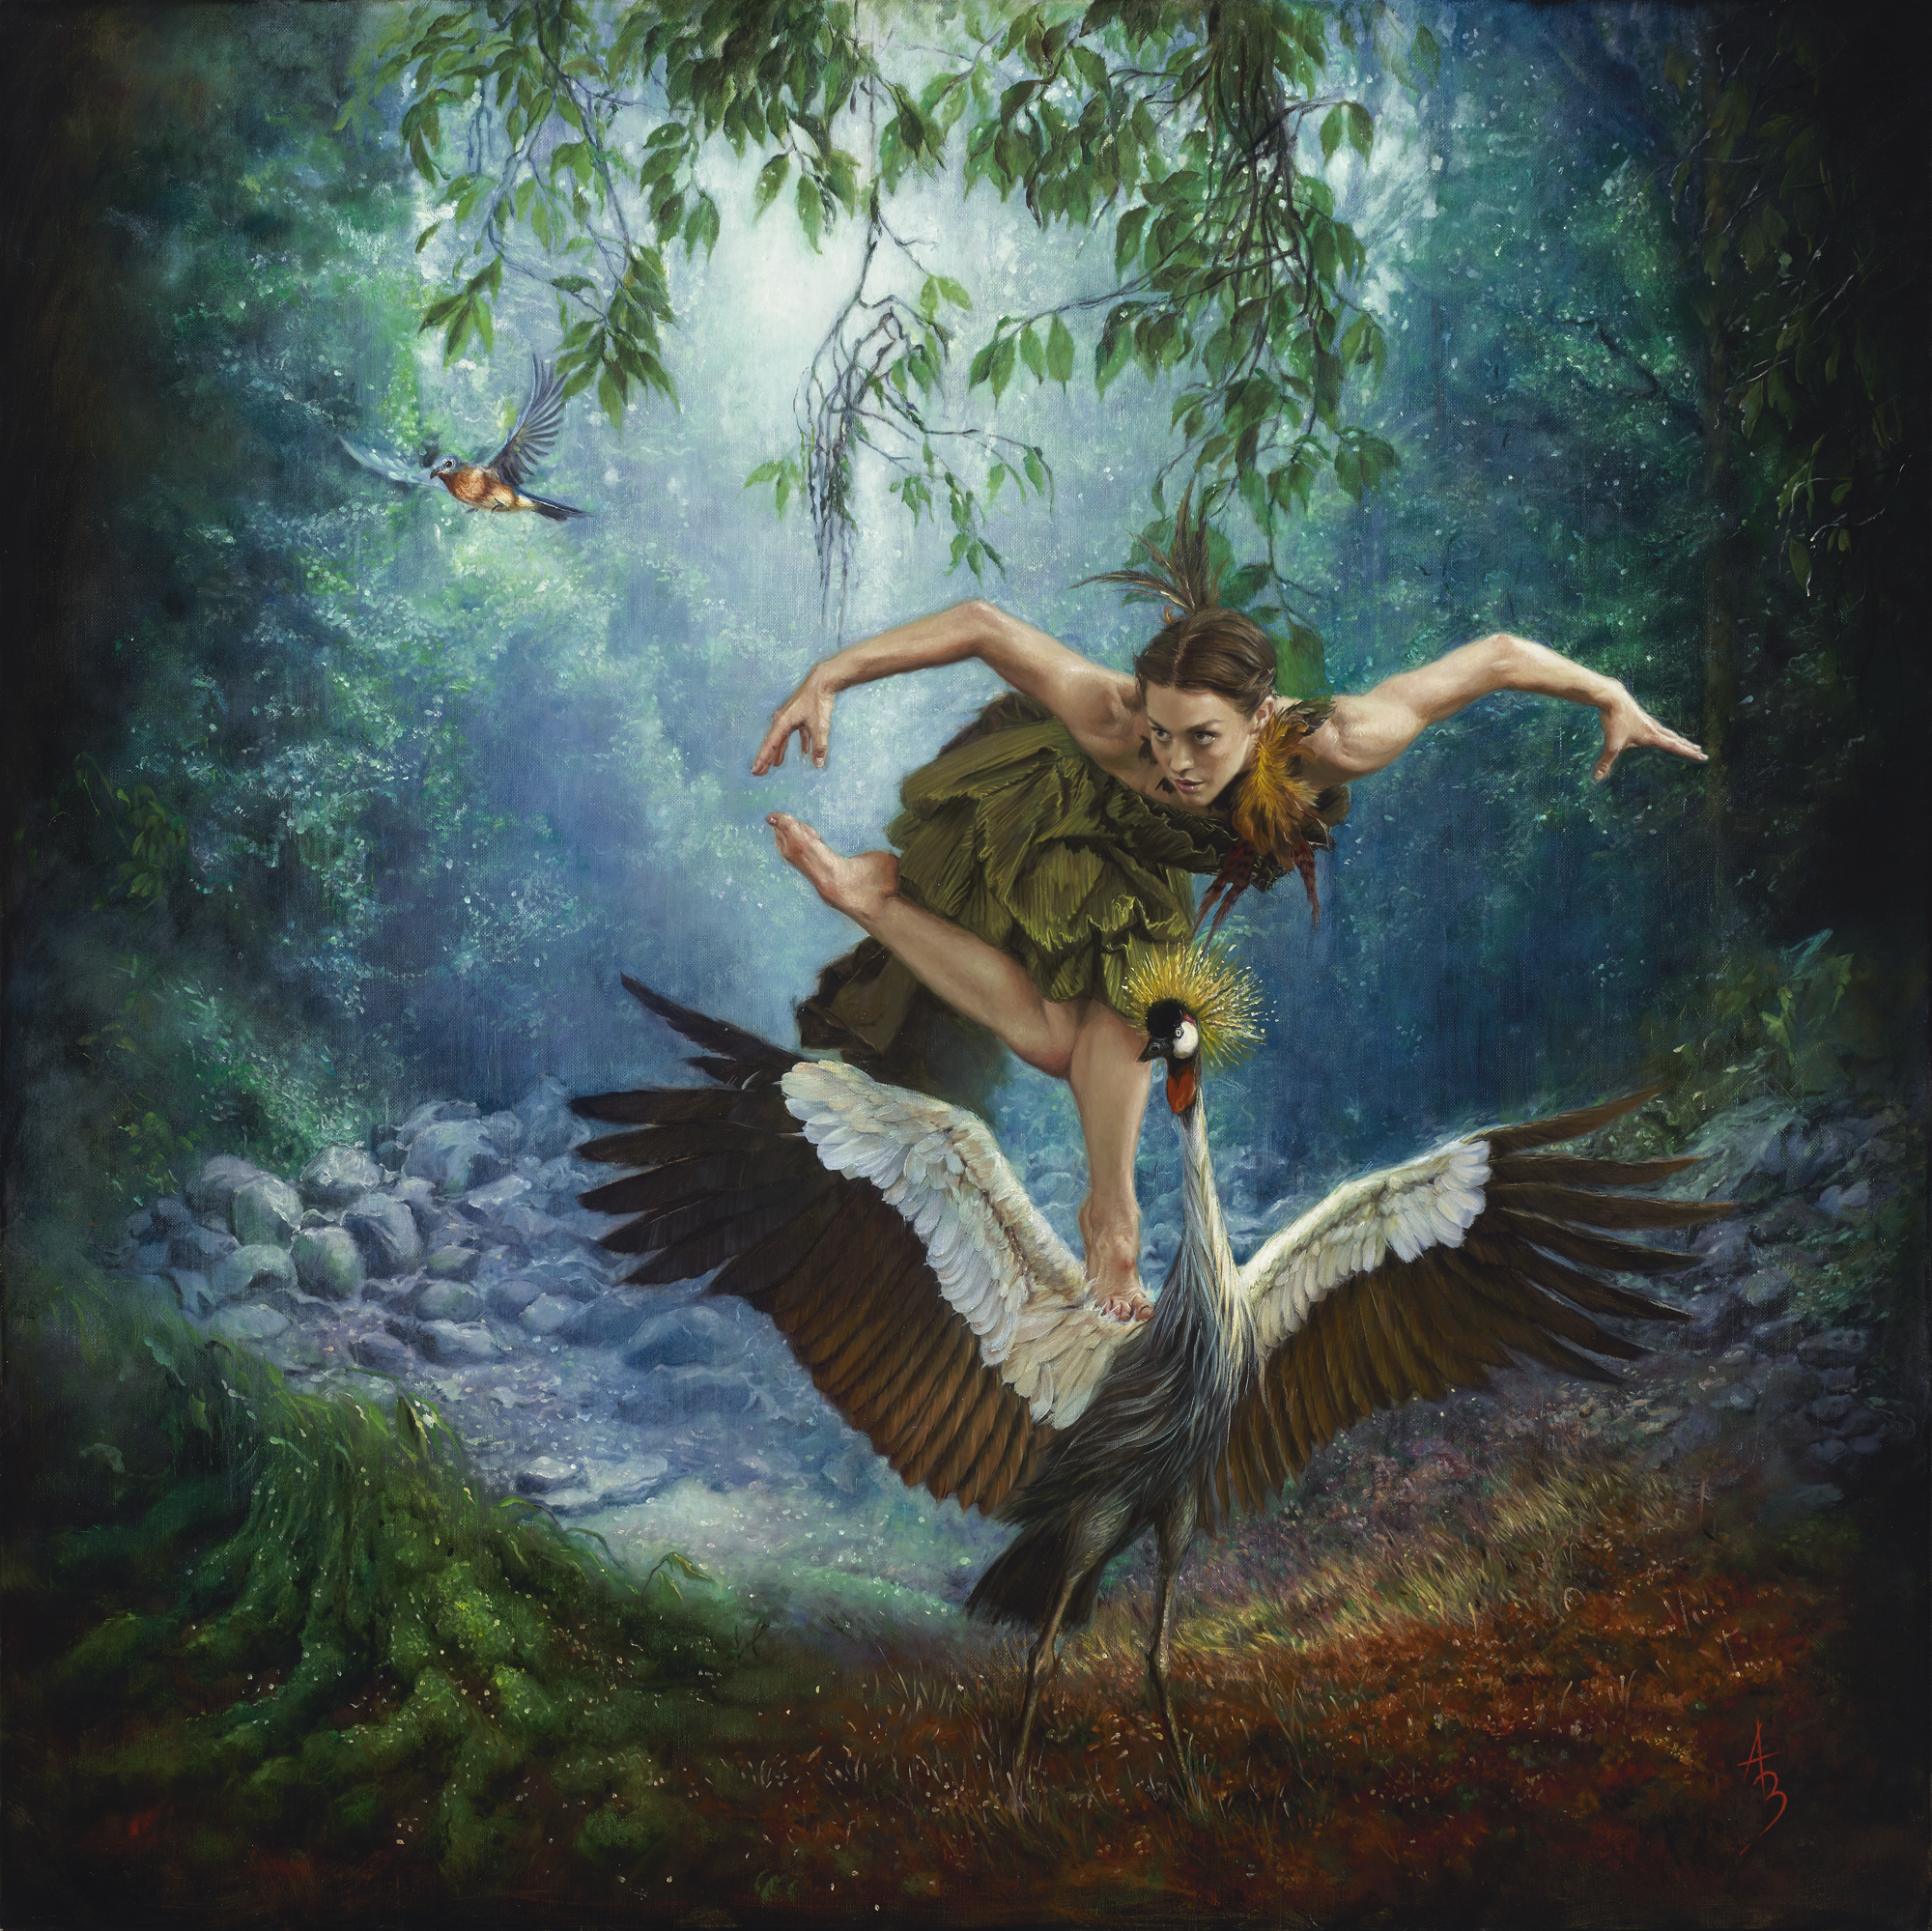 Alexandra Manukyan |  Birds of a Feather  | oil on Belgian linen | 40x40